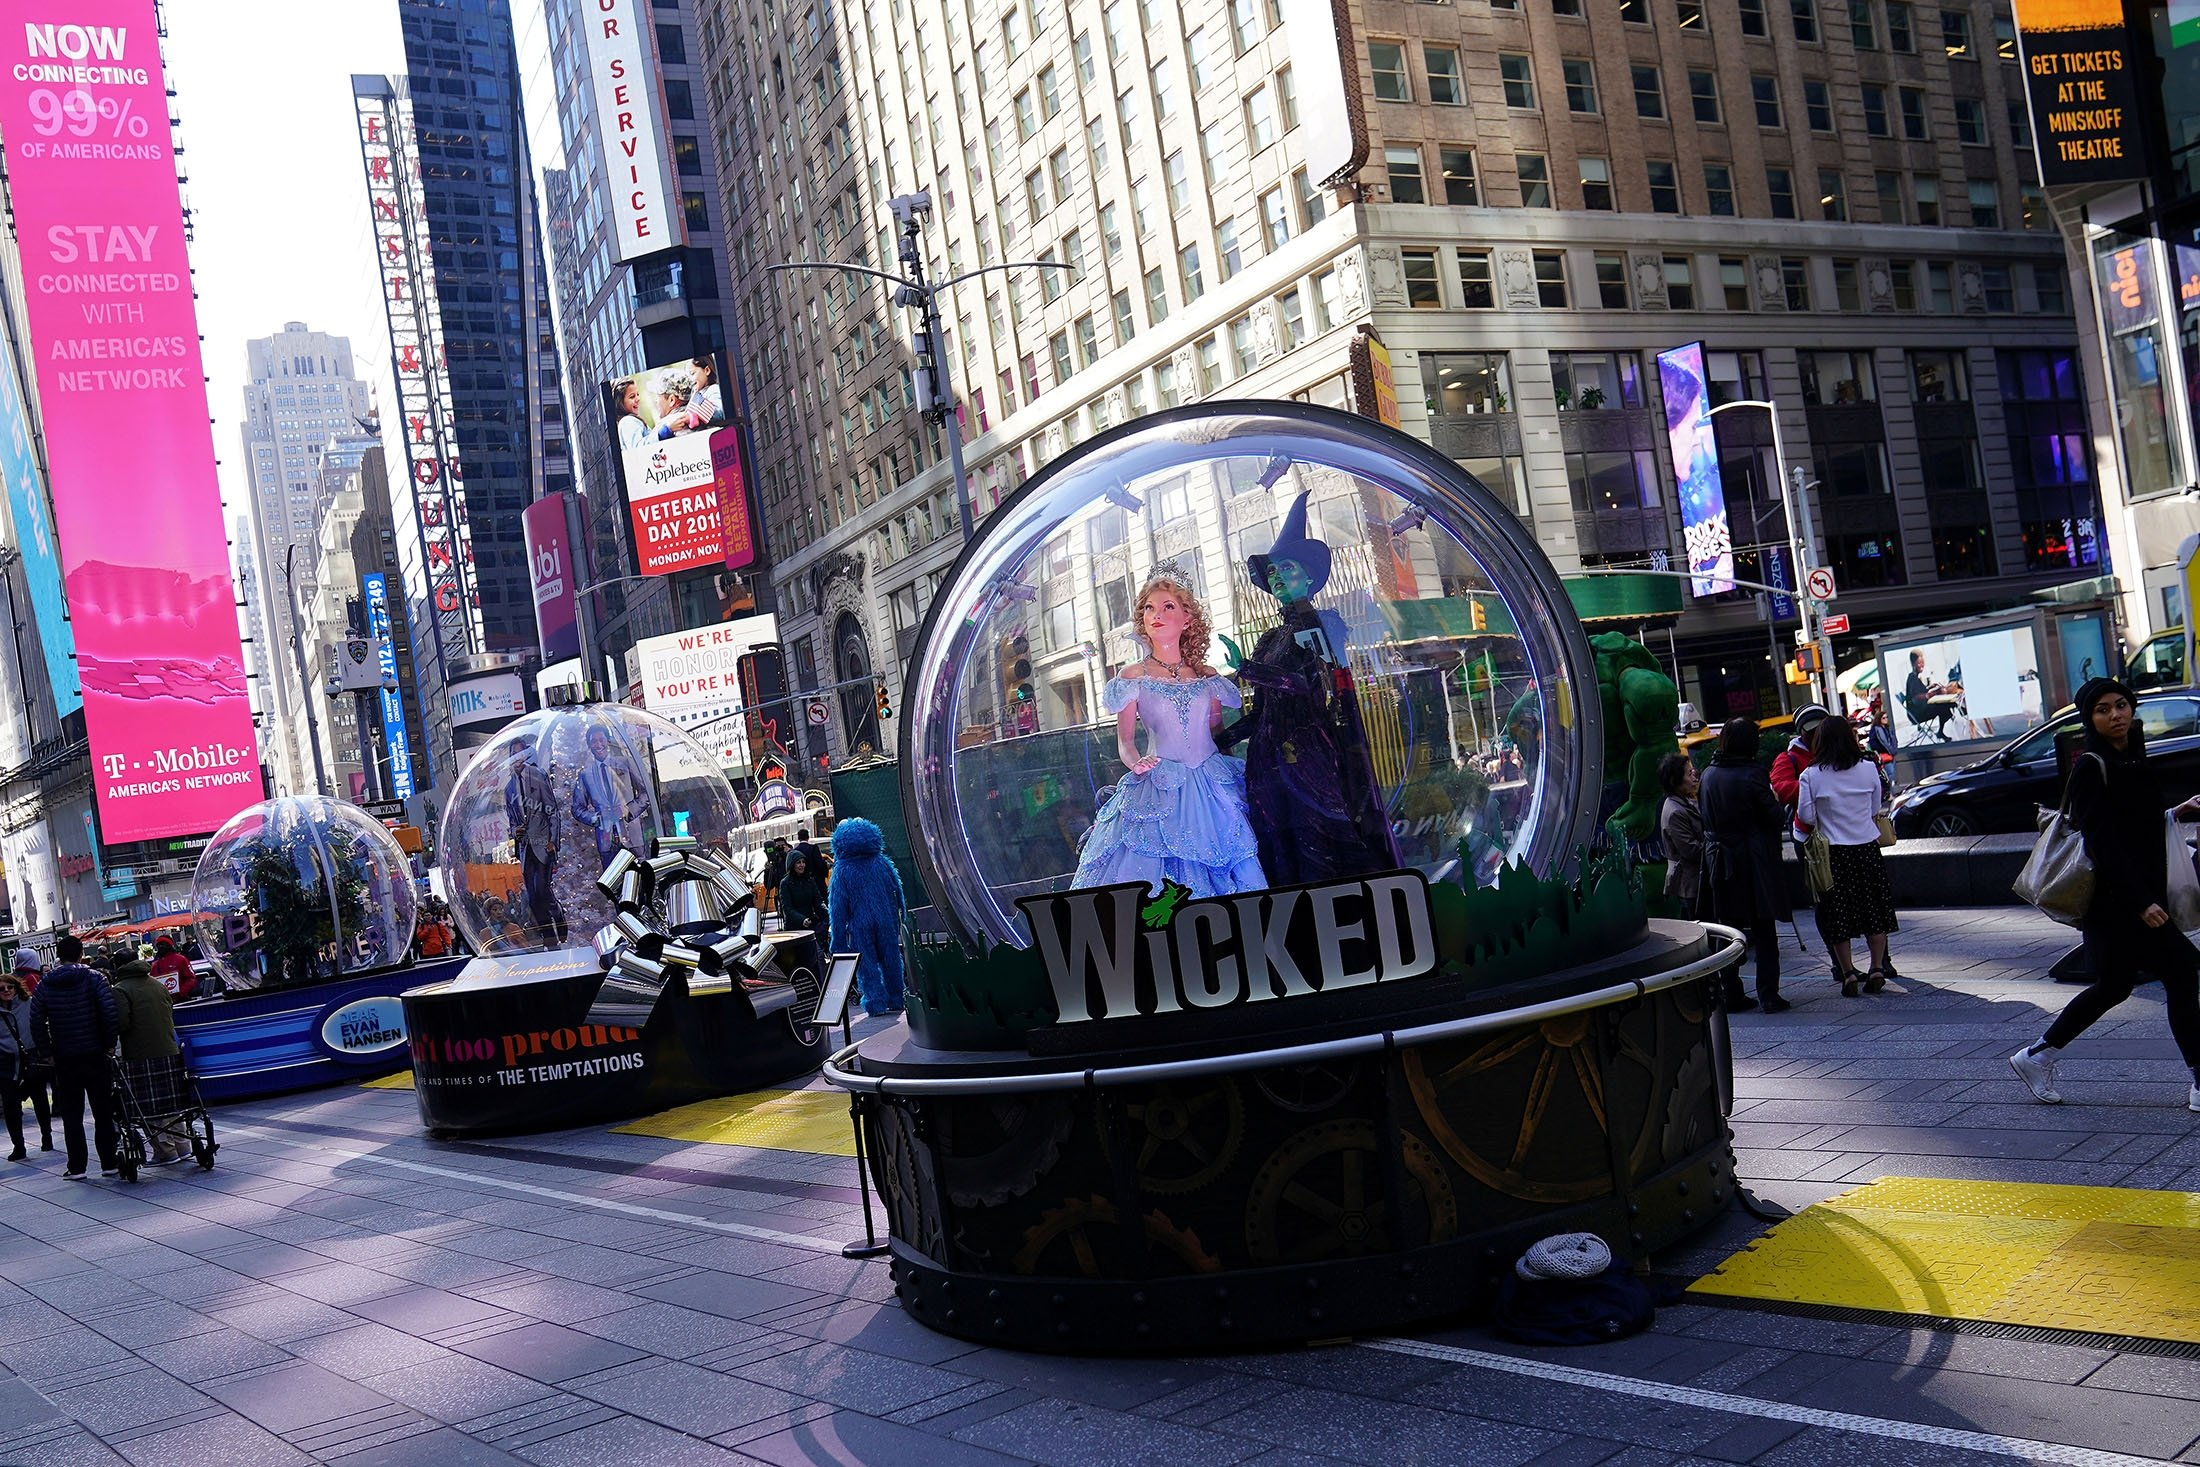 A display for the Broadway show 'Wicked' is pictured on Times Square in the Manhattan borough of New York, New York, U.S., Nov. 6, 2019. (Reuters Photo)